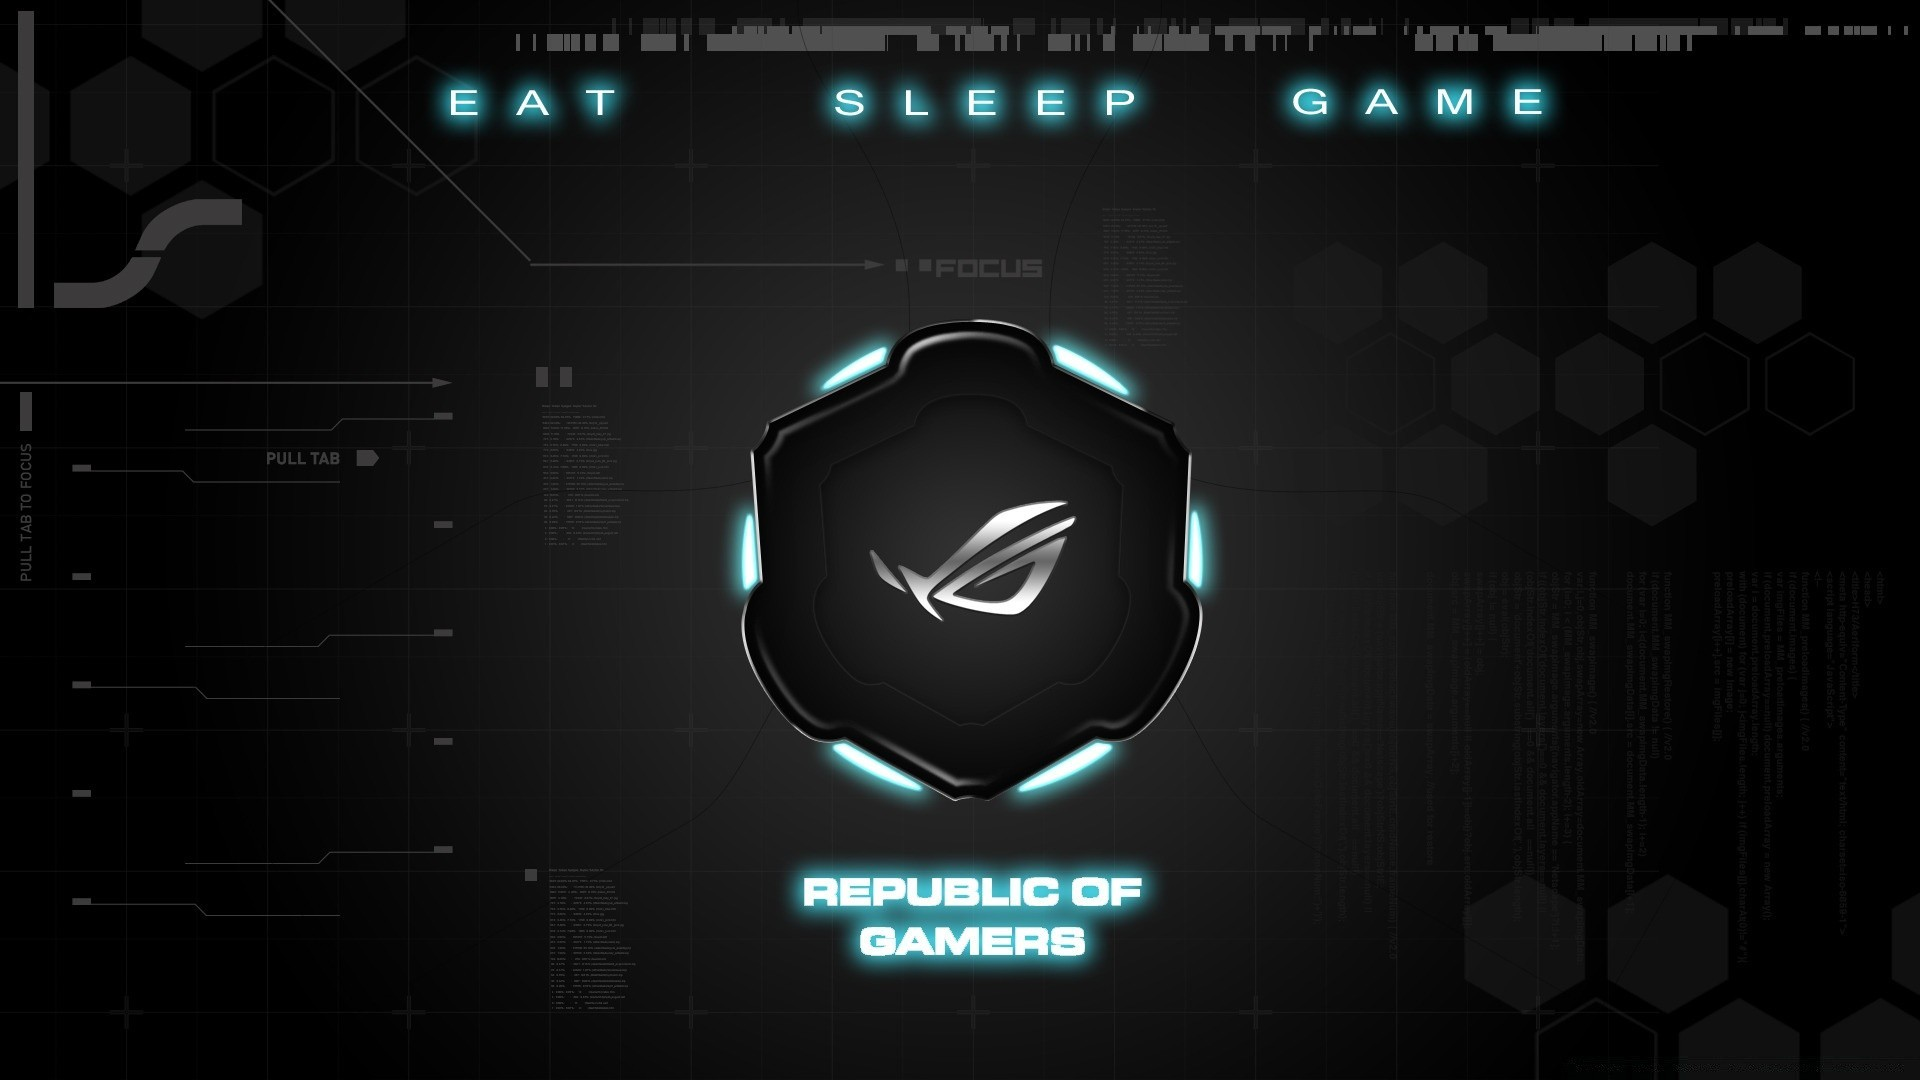 Eat Sleep Game Android Wallpapers For Free